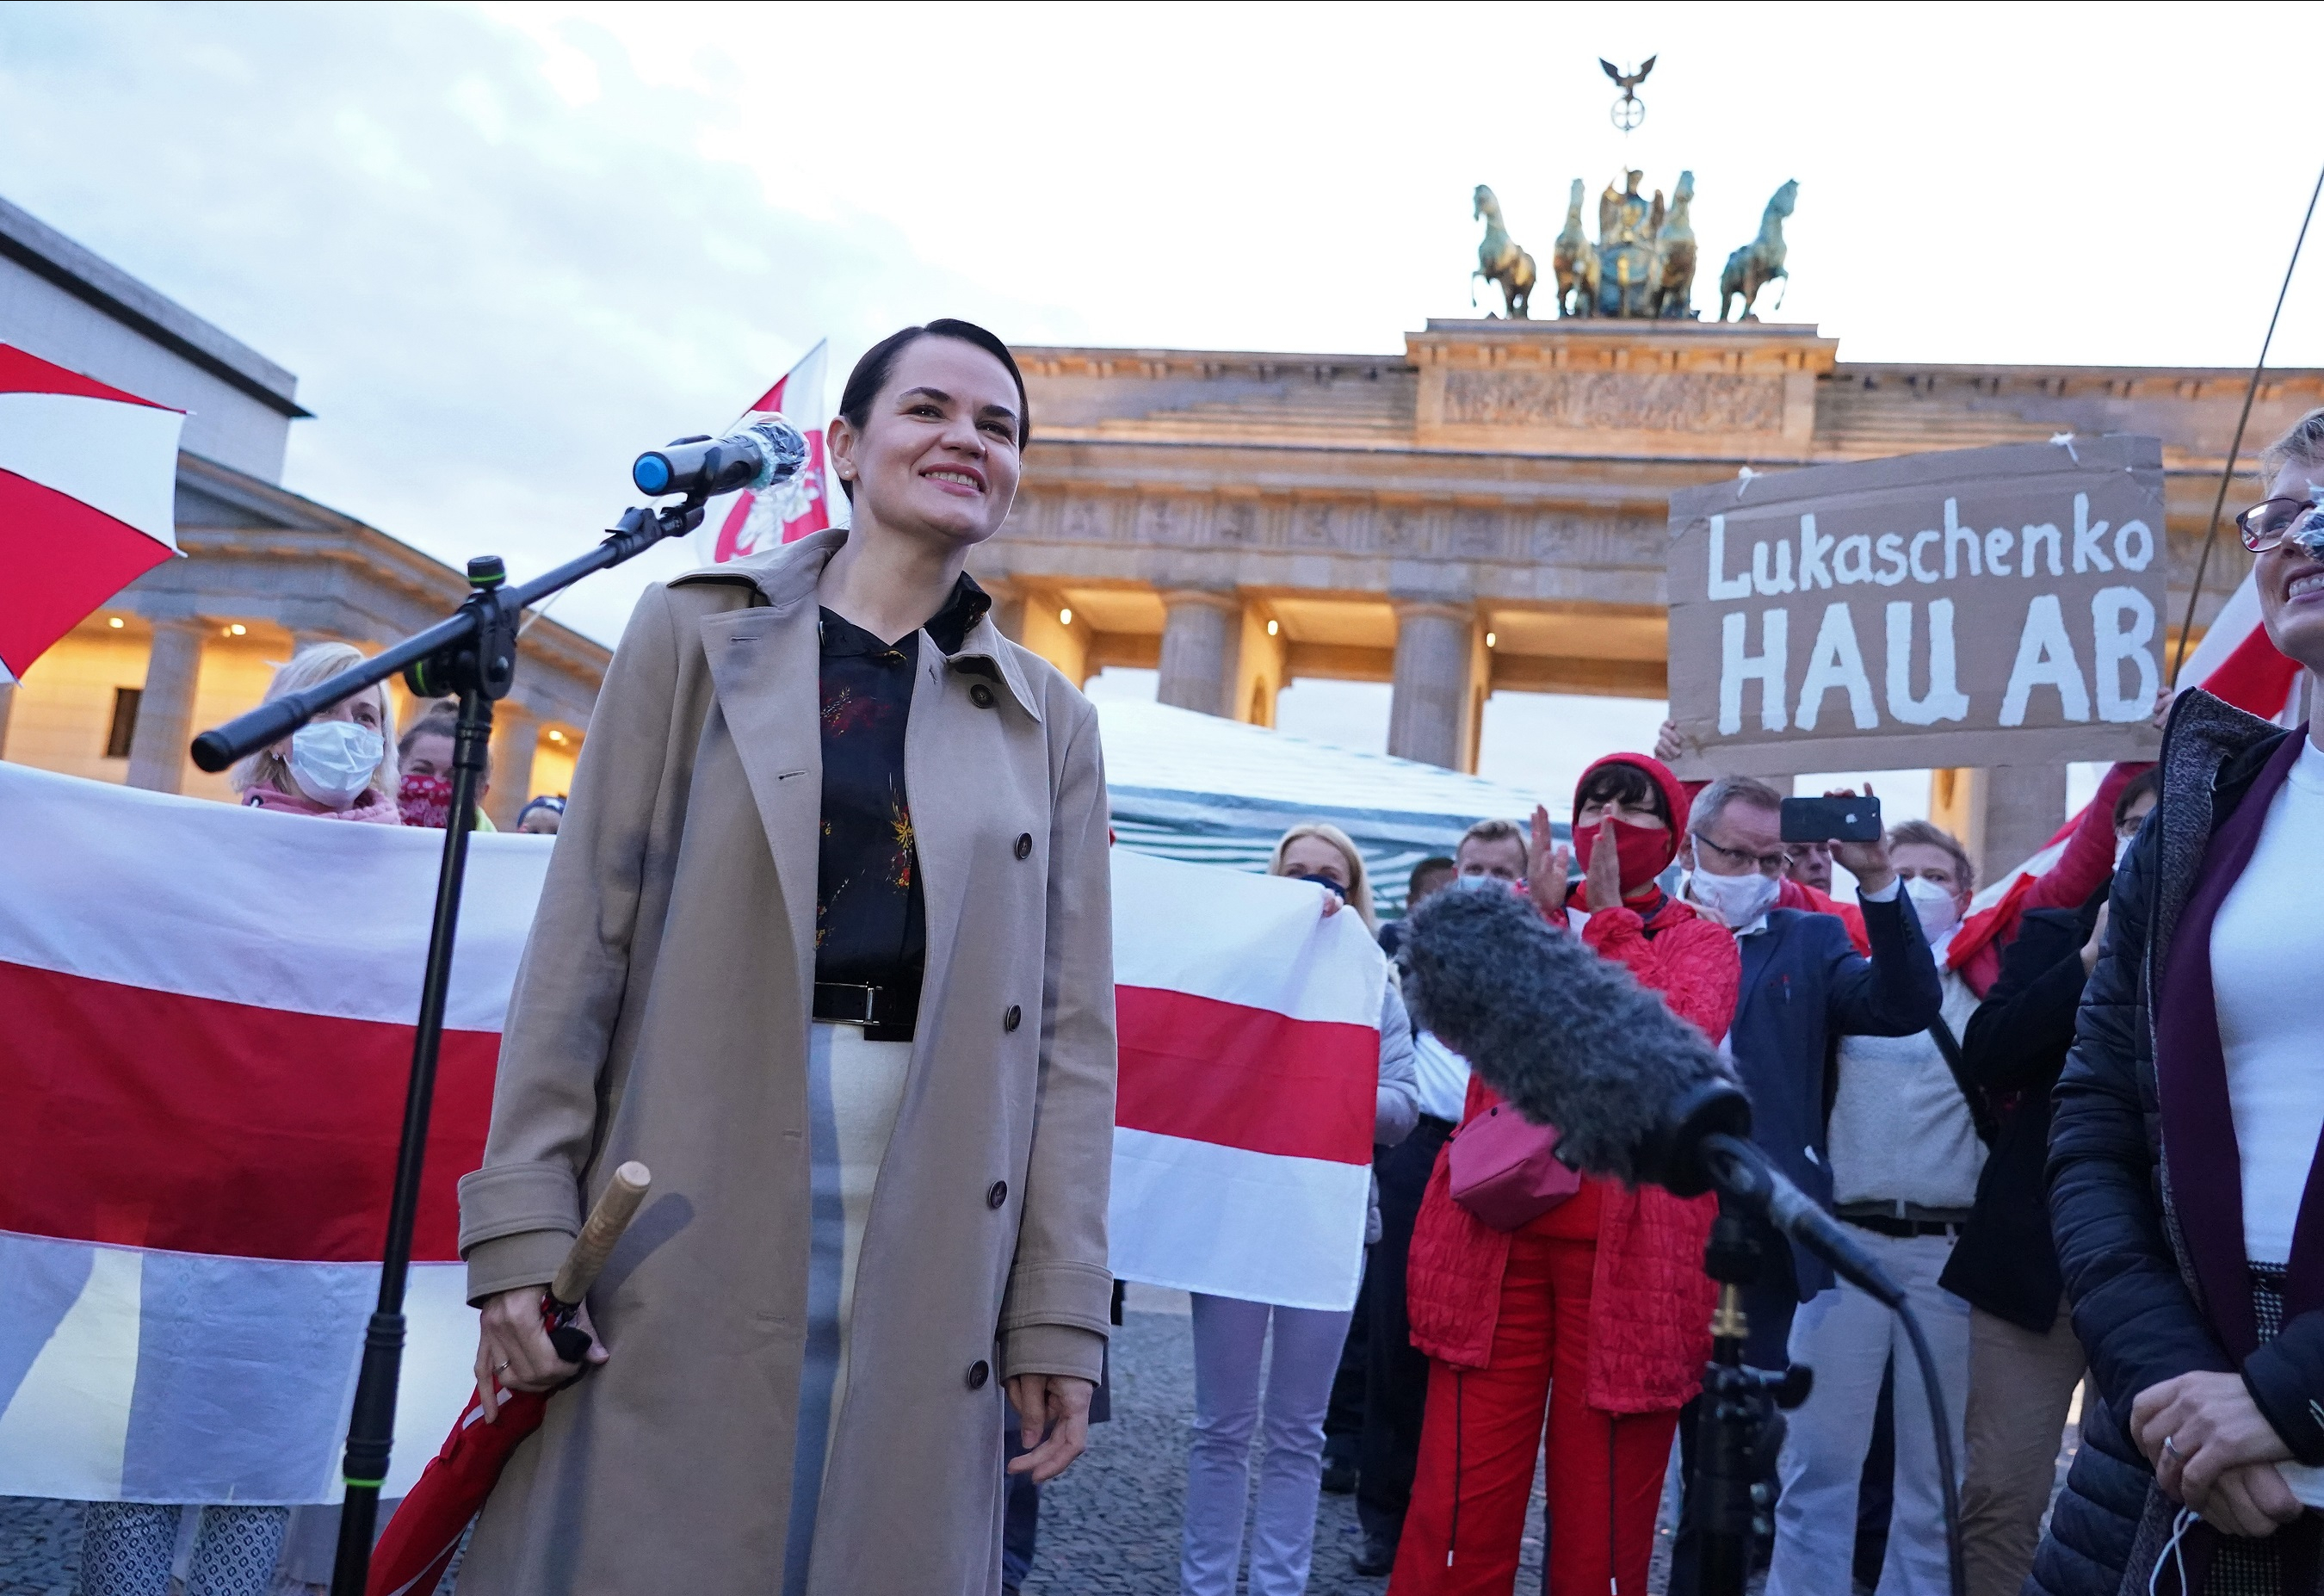 "Belarusian opposition leader Svetlana Tikhanovskaya arrives to speak to supporters, including one man holding up a sign that reads: ""Lukashenko go away!"" in reference to Belarusian President Alexander Lukashenko, at the Brandenburg Gate on October 05, 2020 in Berlin, Germany."